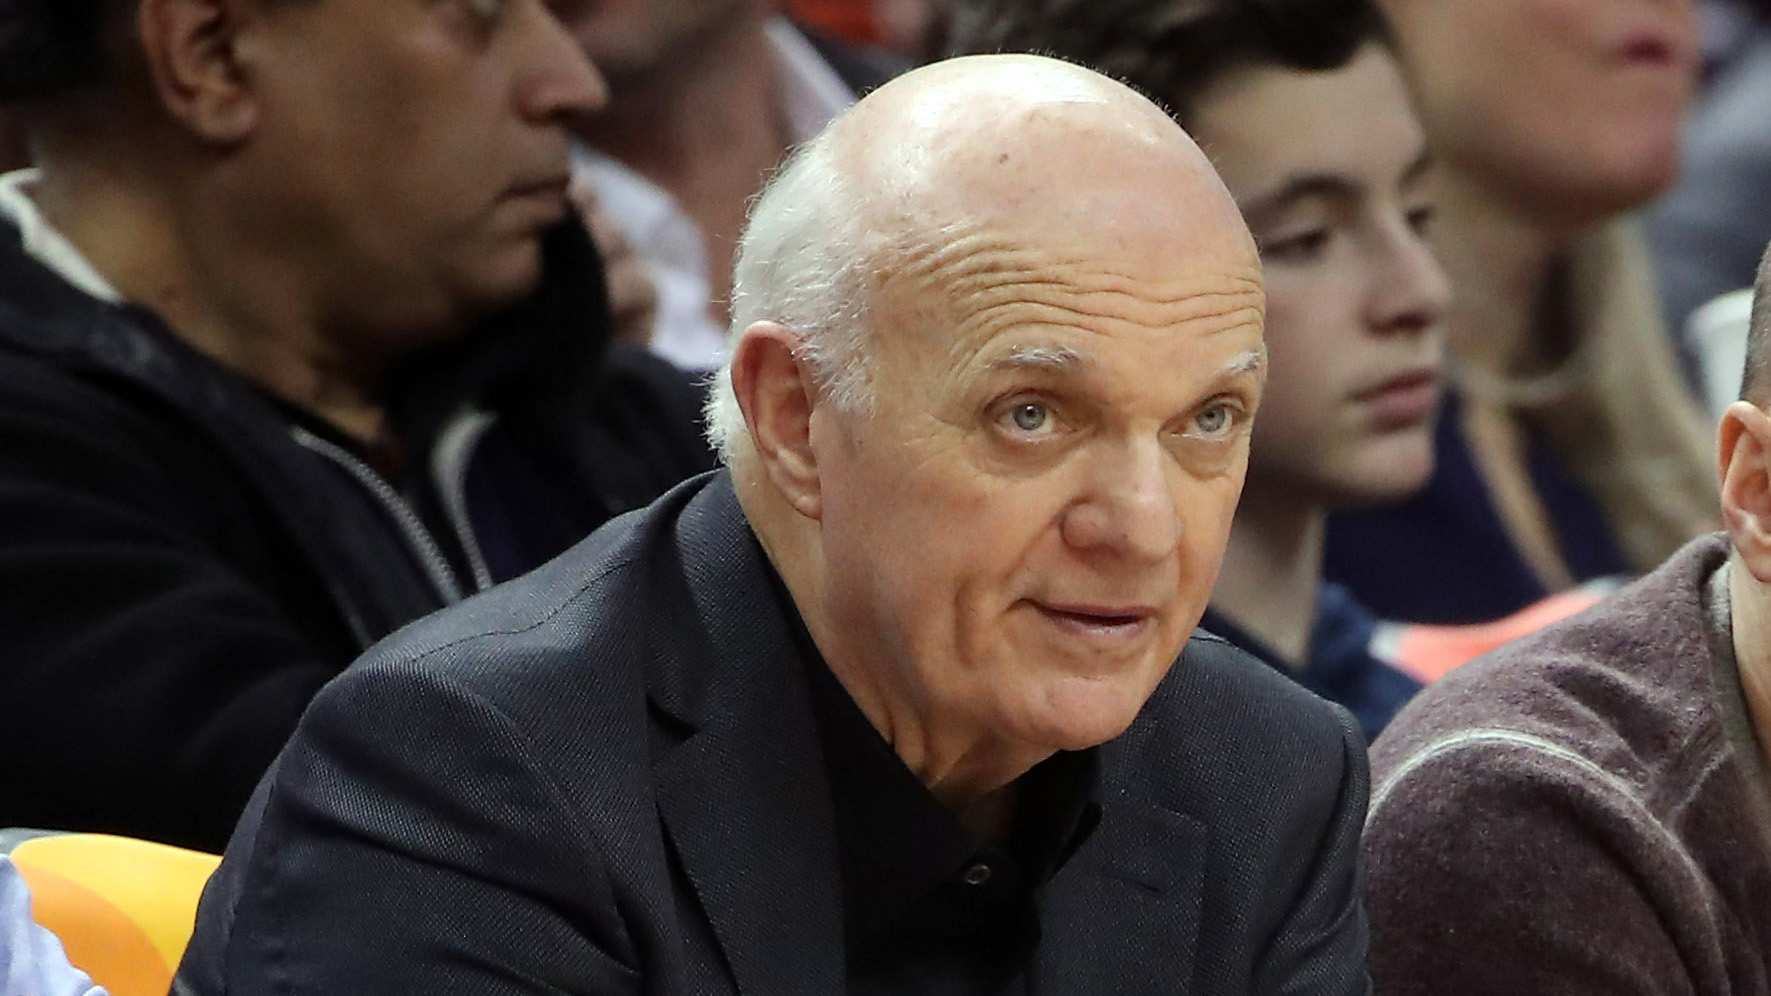 Jan 22, 2017; Toronto, Ontario, CAN; Toronto Maple Leafs general manager Lou Lamoriello and New Yor Yankees general manager Brian Cashman watch the Toronto Raptors play against the Phoenix Suns at Air Canada Centre. Mandatory Credit: Tom Szczerbowski-USA TODAY Sports